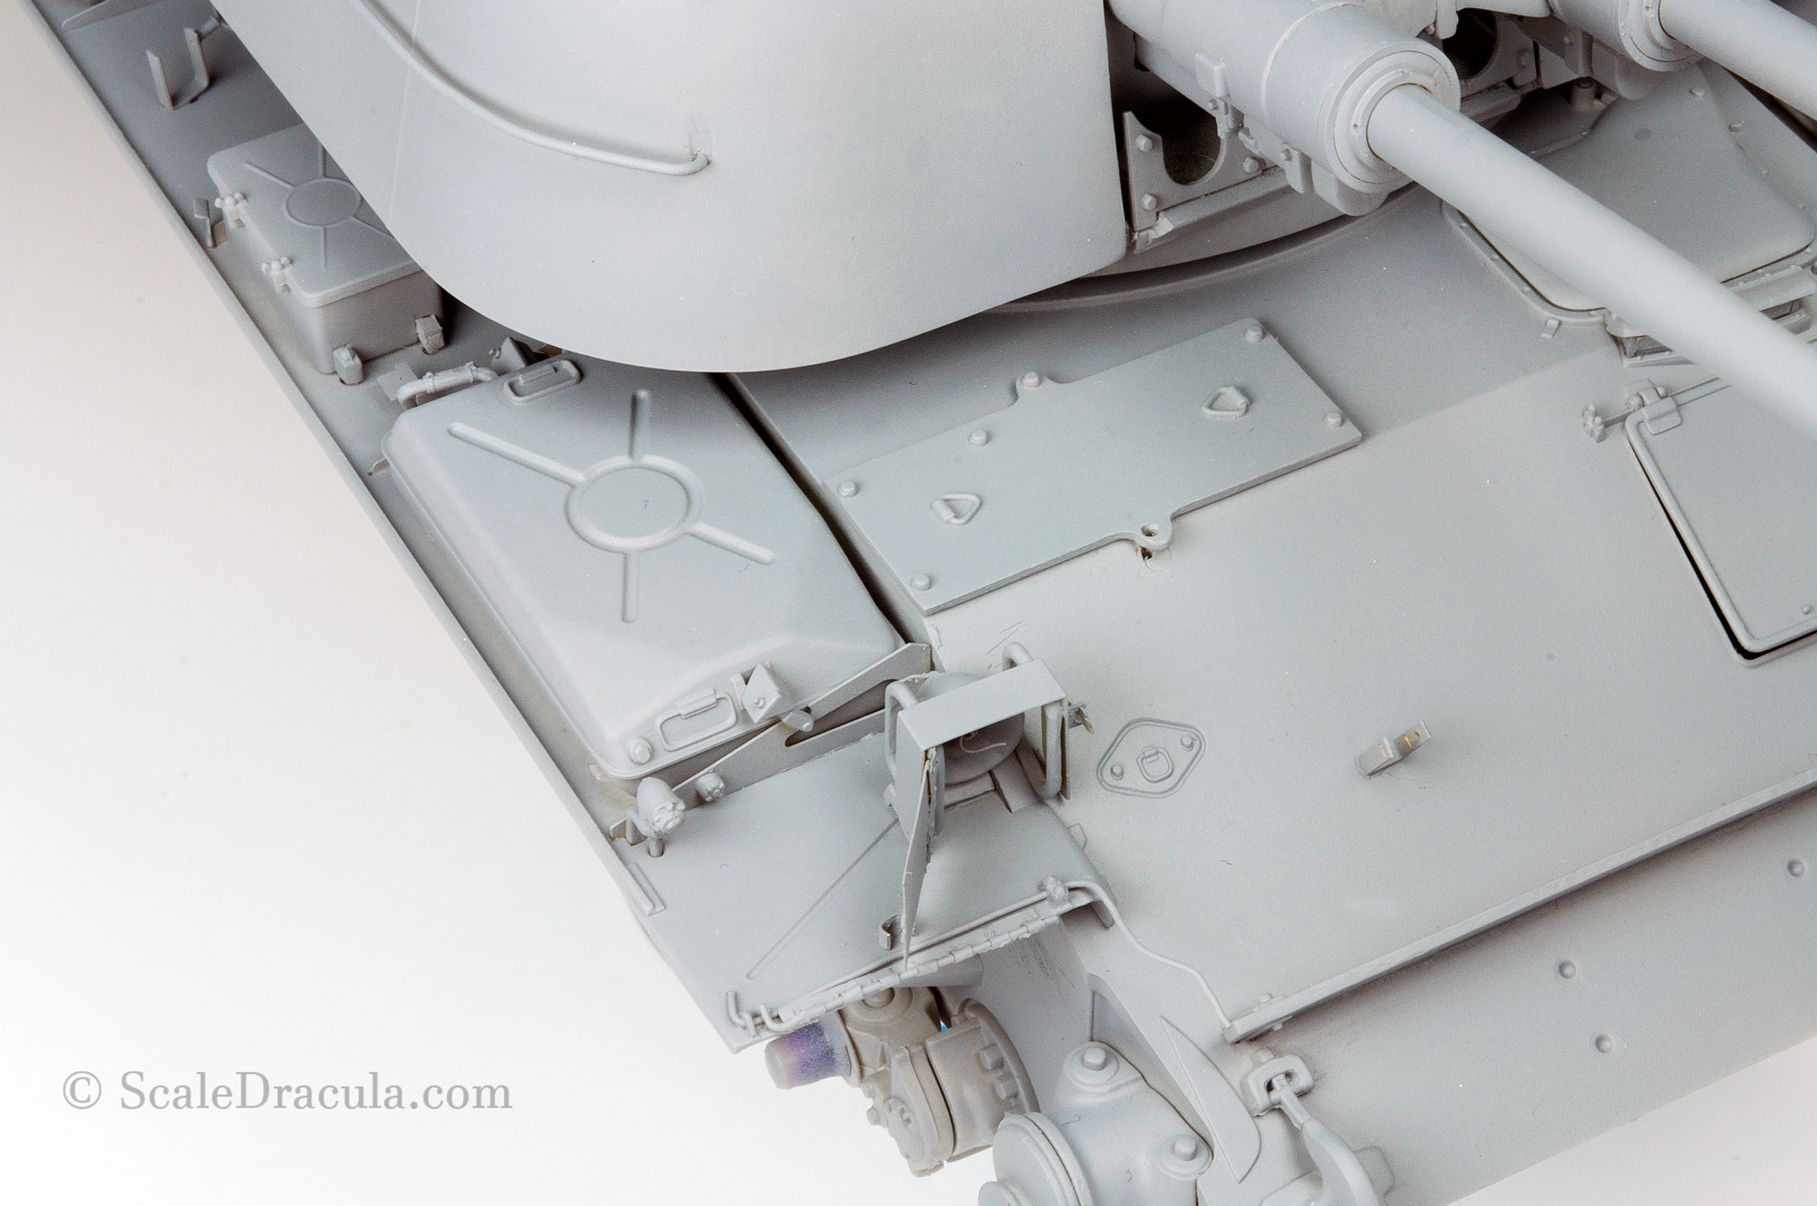 Details of the primed model, ZSU-57 by TAKOM